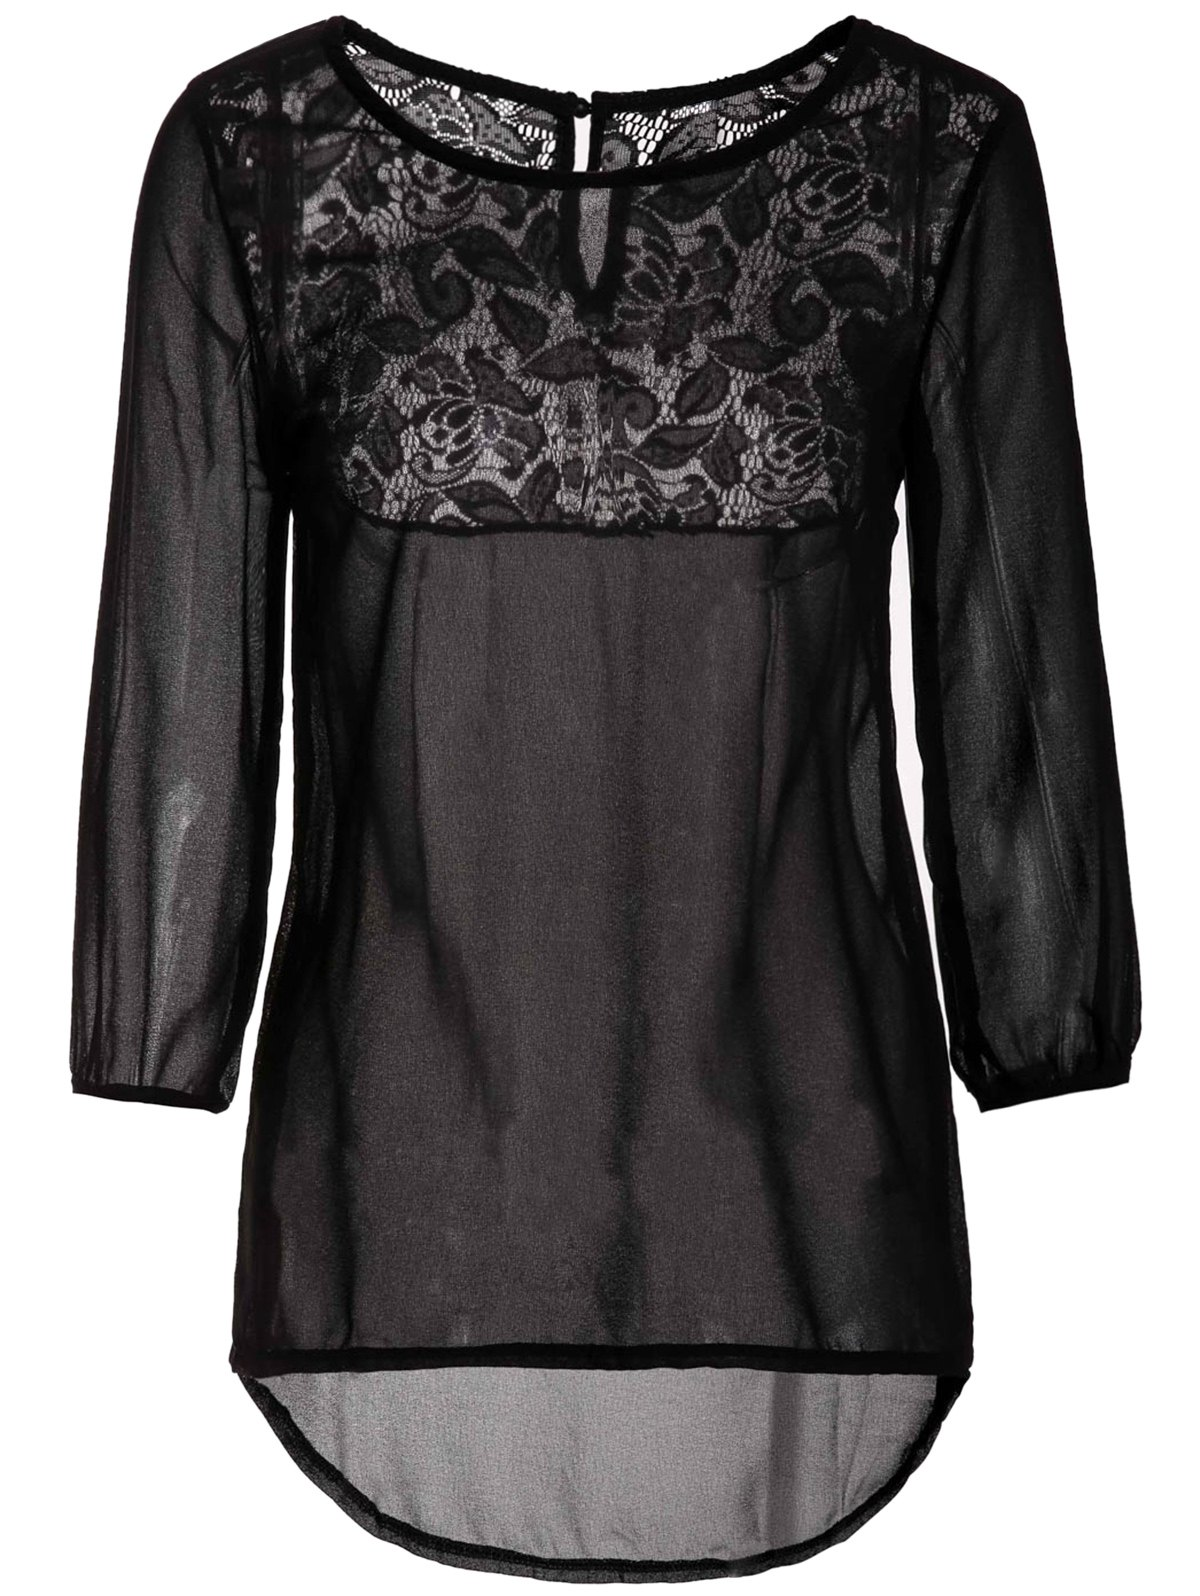 Sweet Scoop Neck 3/4 Bell Sleeve Back Lace Spliced Chiffon Blouse For Women - BLACK S